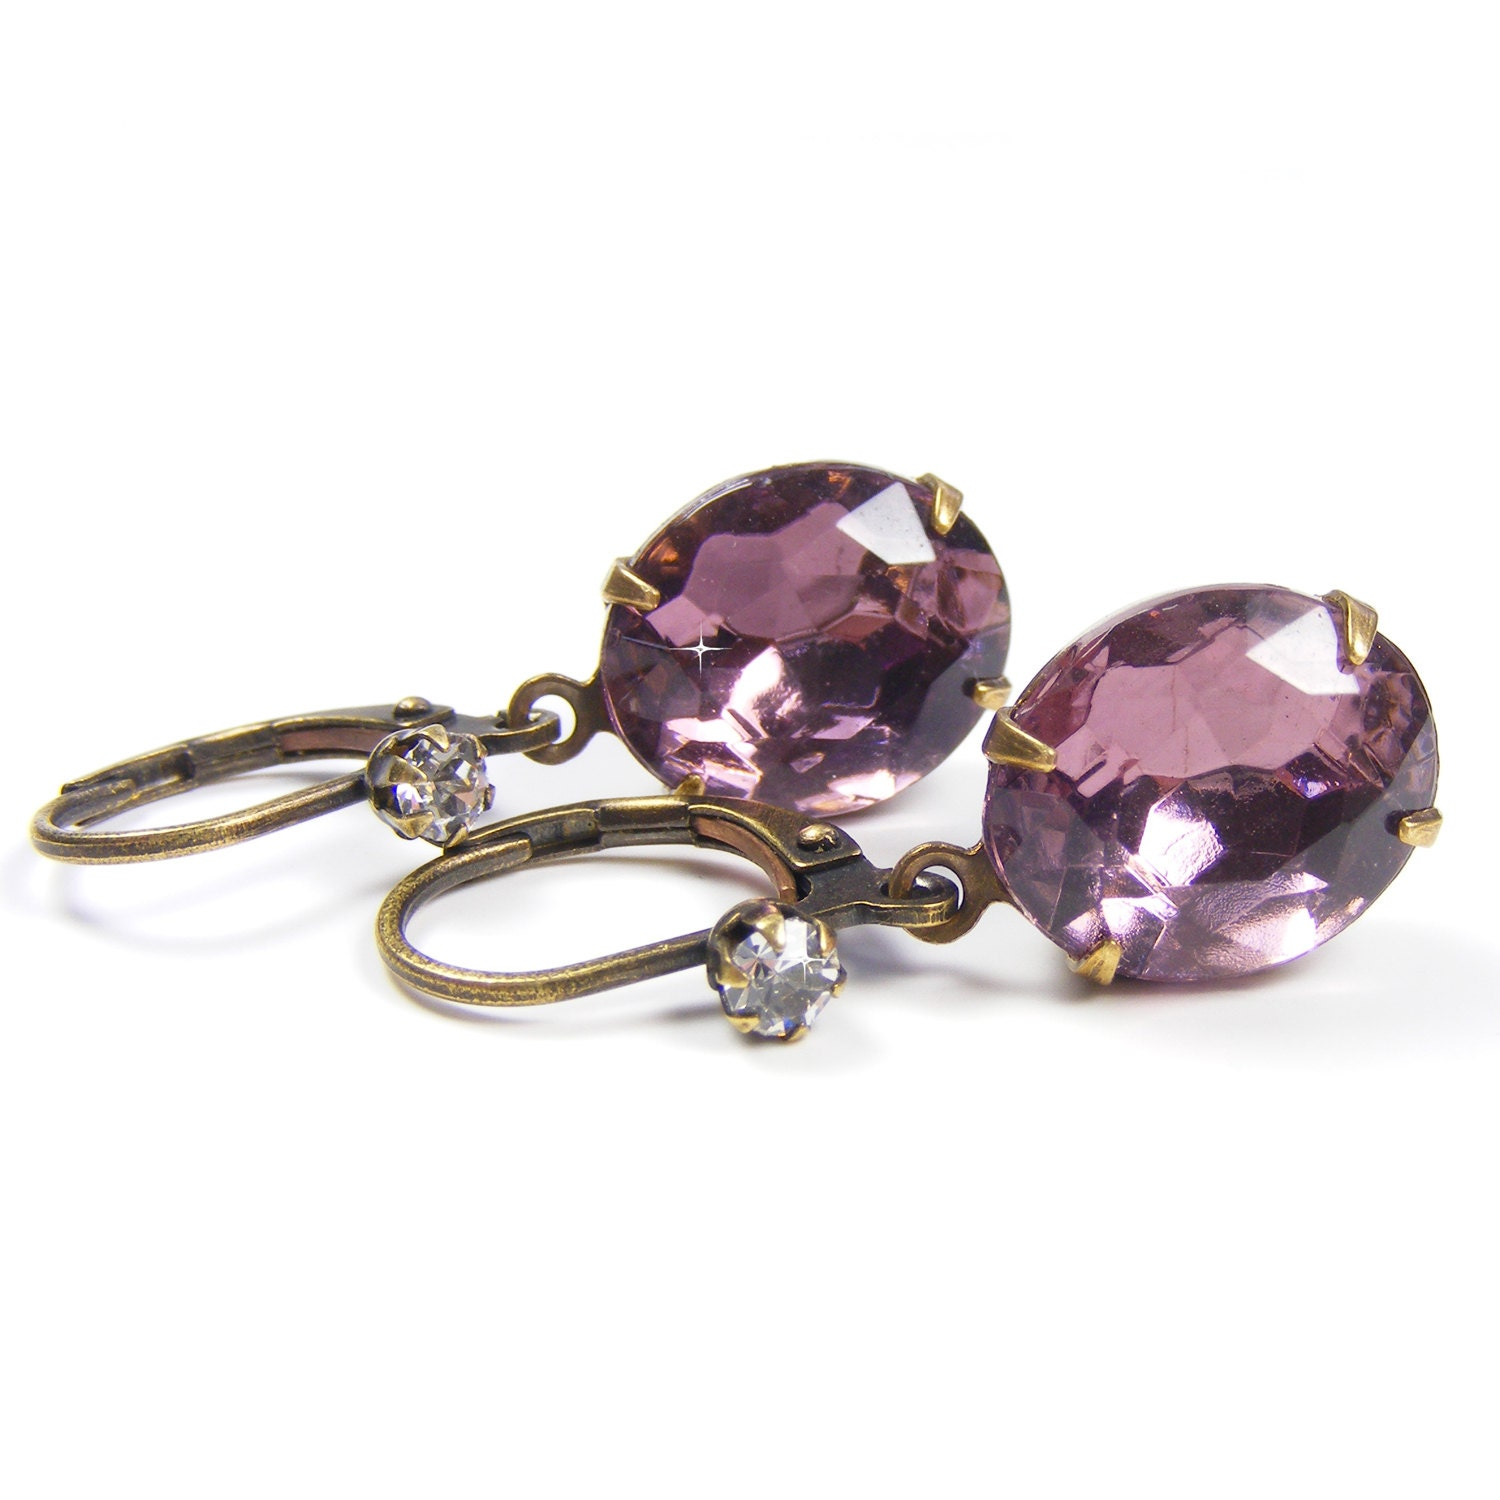 Amethyst Rhinestone Drop Earrings, Genuine 1950s Vintage Crystal Jewels, Great Gatsby Style Vintage Inspired Jewellery